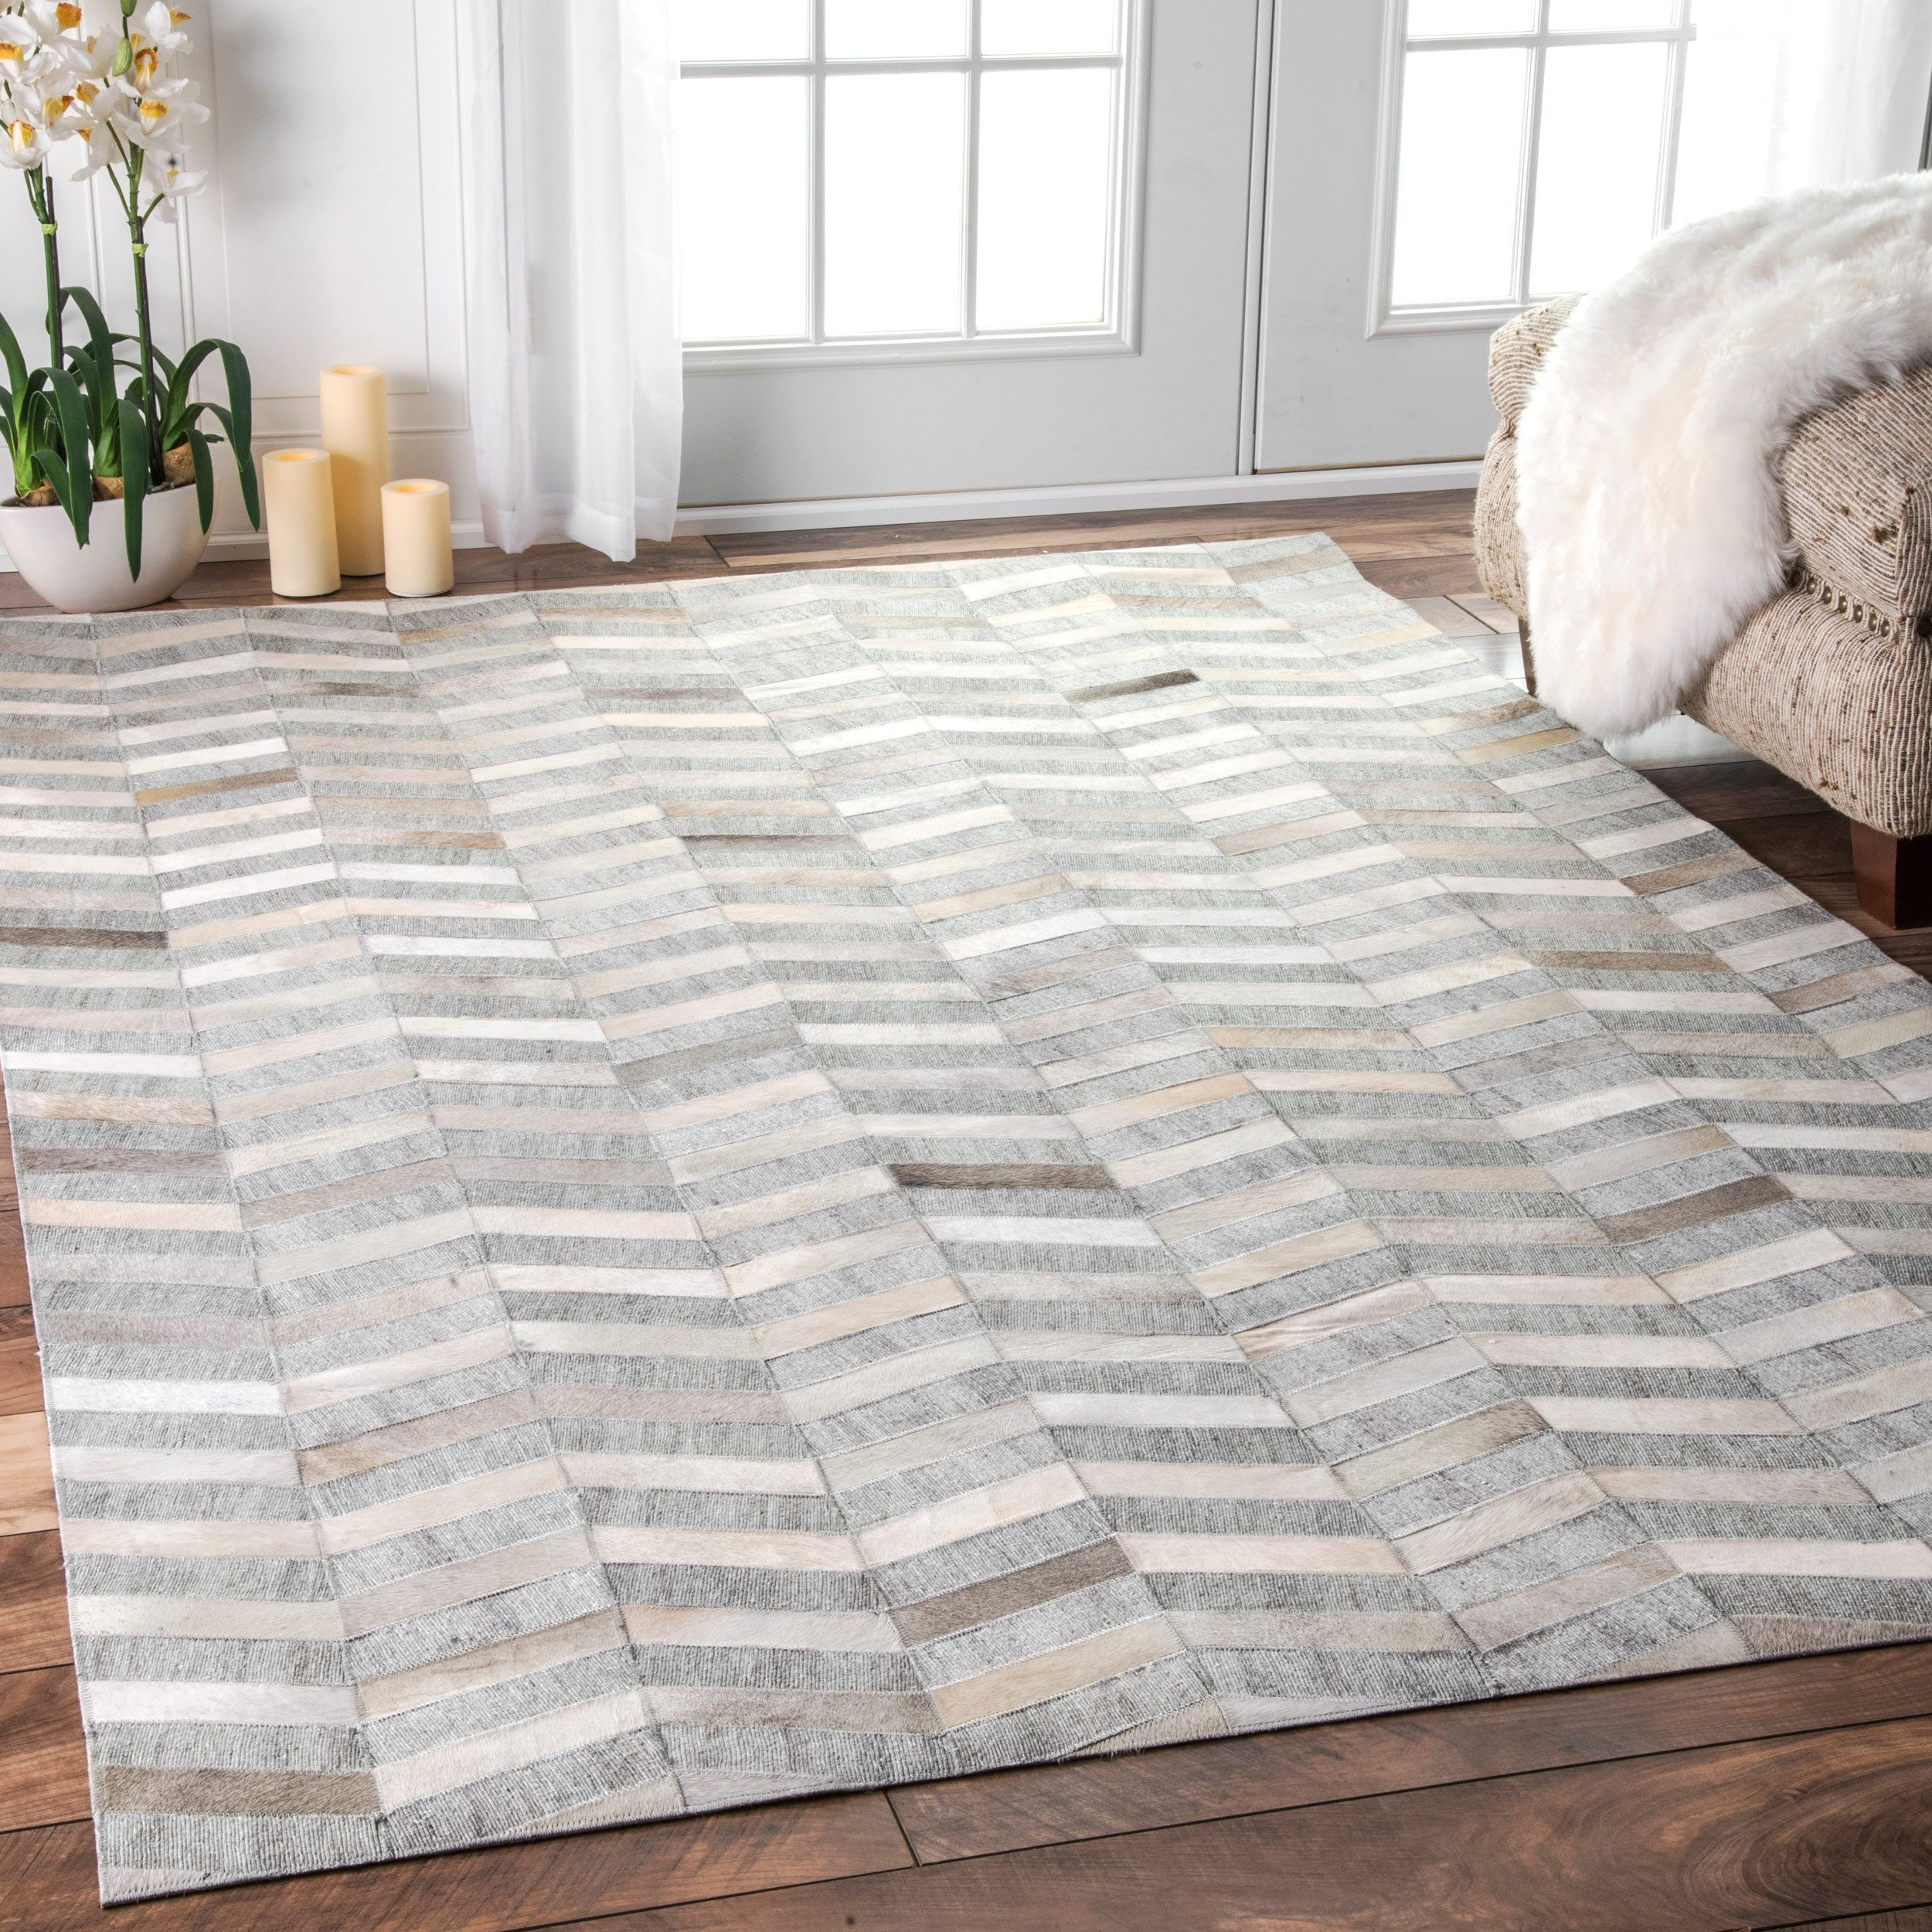 parks rug blog it design rugs friendly home on pet dog